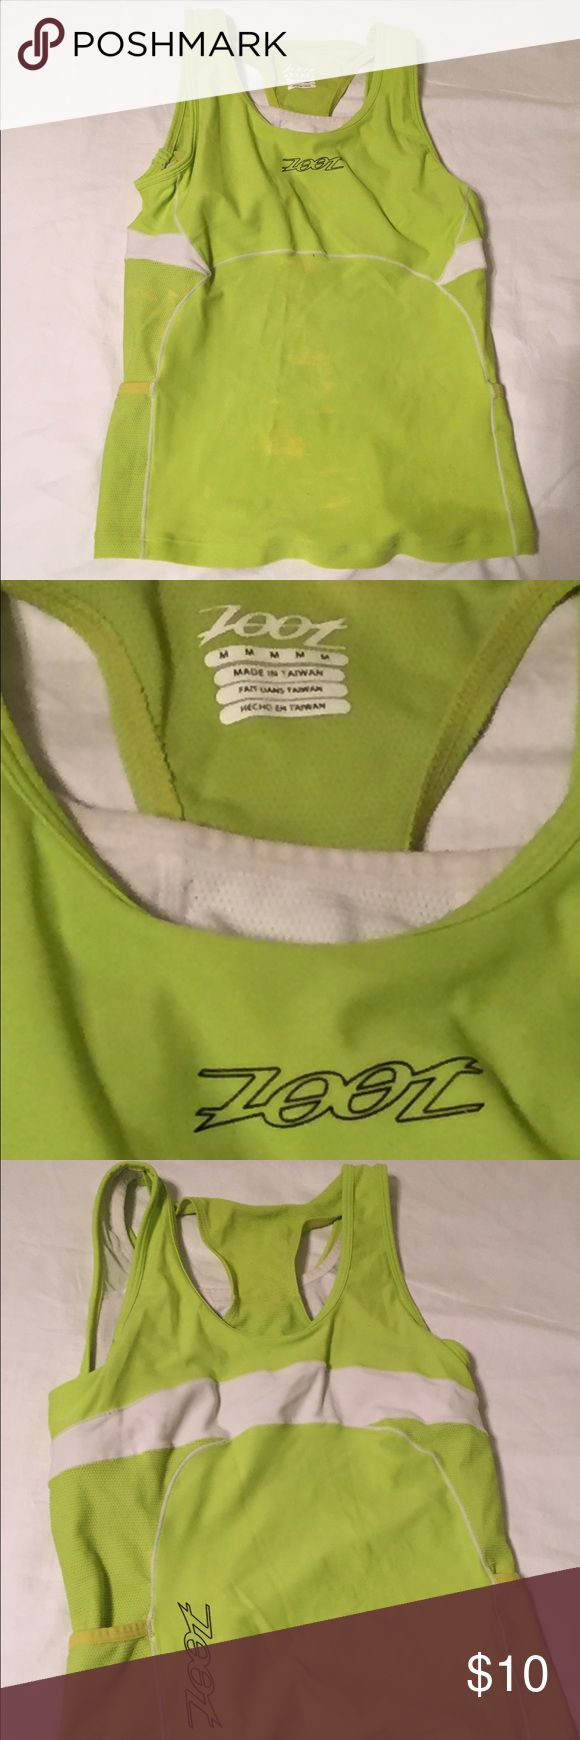 Zoot triathlon, cycling or running top This has only been worn once! High quality company, Zoot, famous for triathlon clothing but can also be used for just cycling or running.  Has a very comfortable and stable shelf bra, and pockets for storage. You won't be disappointed with this top for your quality workouts! Zoot Tops